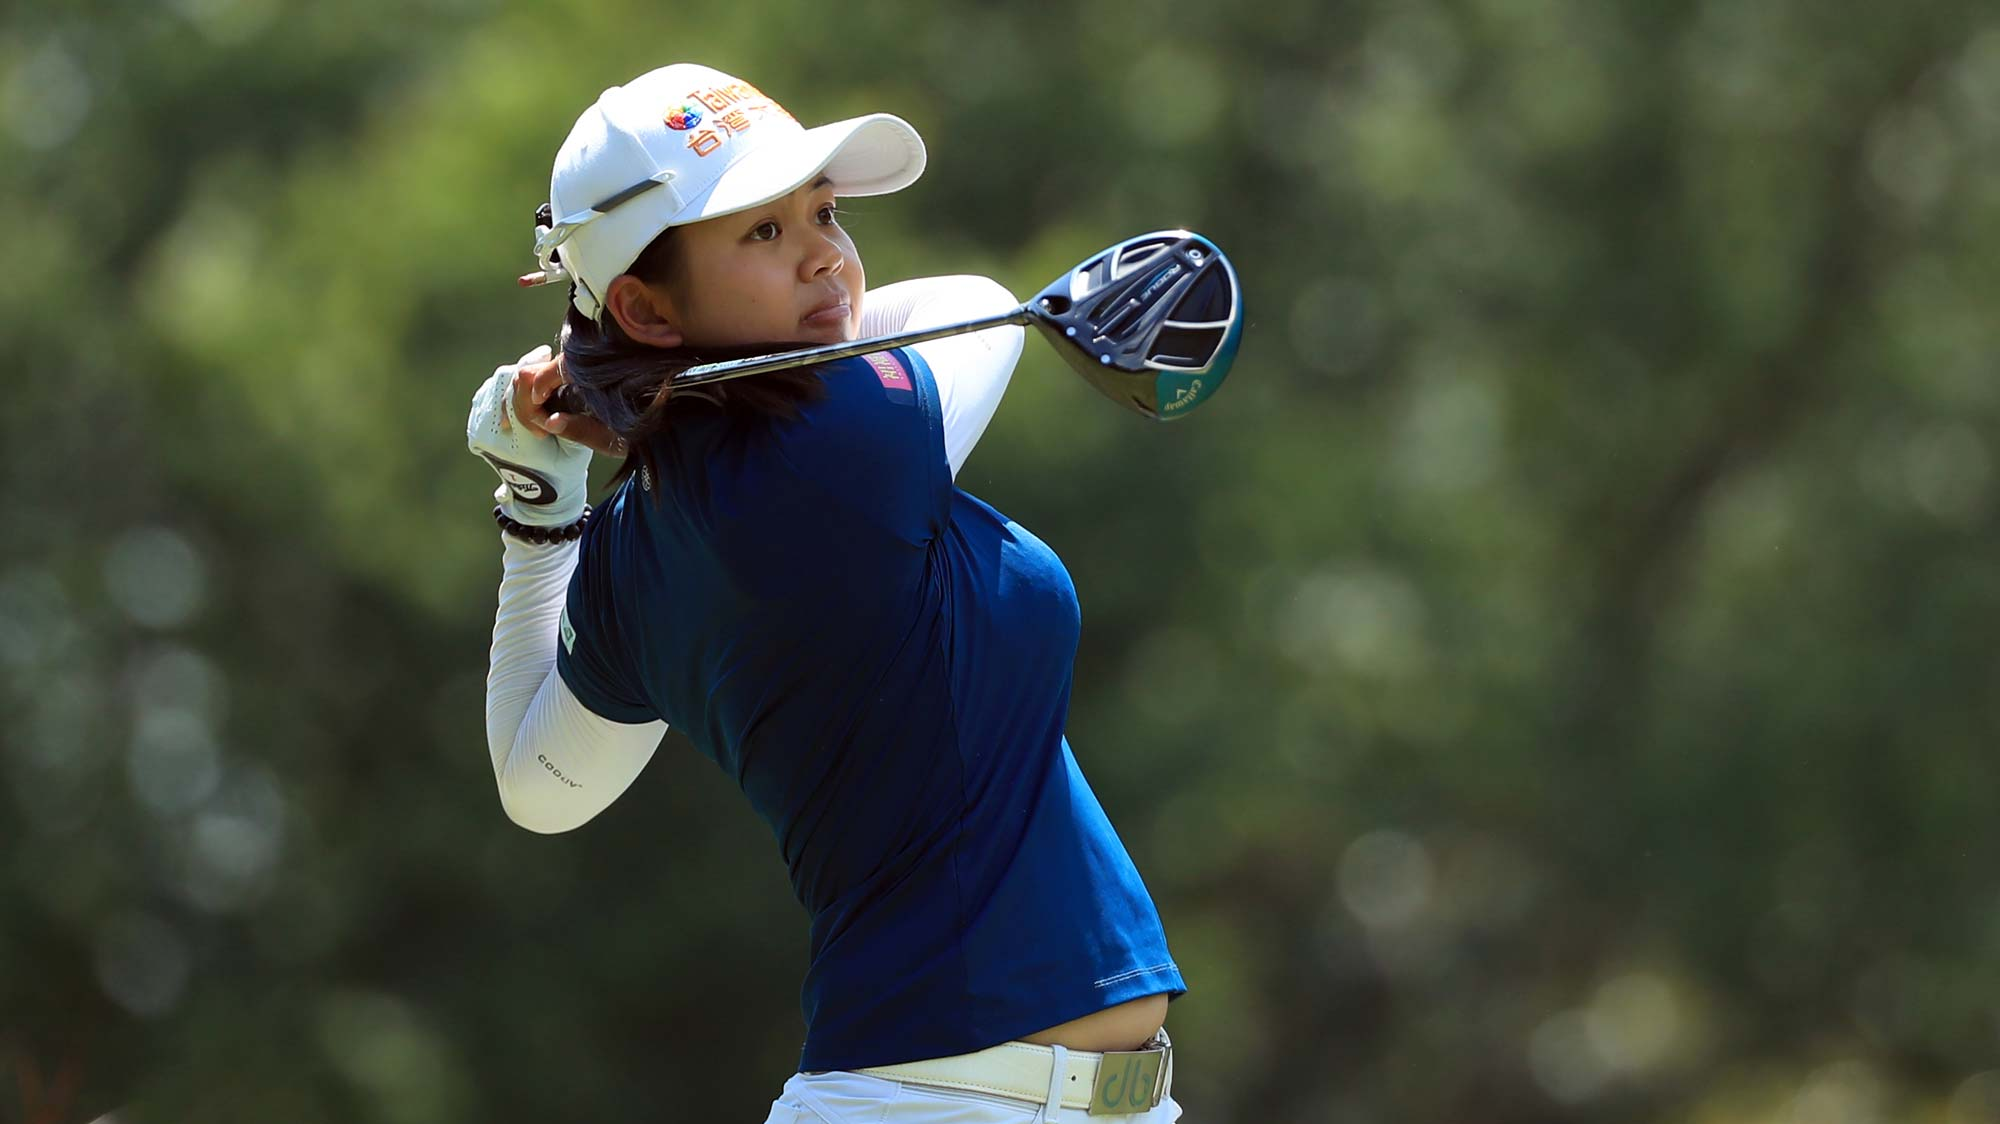 Wei-Ling Hsu of Chinese Taipei hits her tee shot on the third hole during the final round of the Pure Silk Championshipv